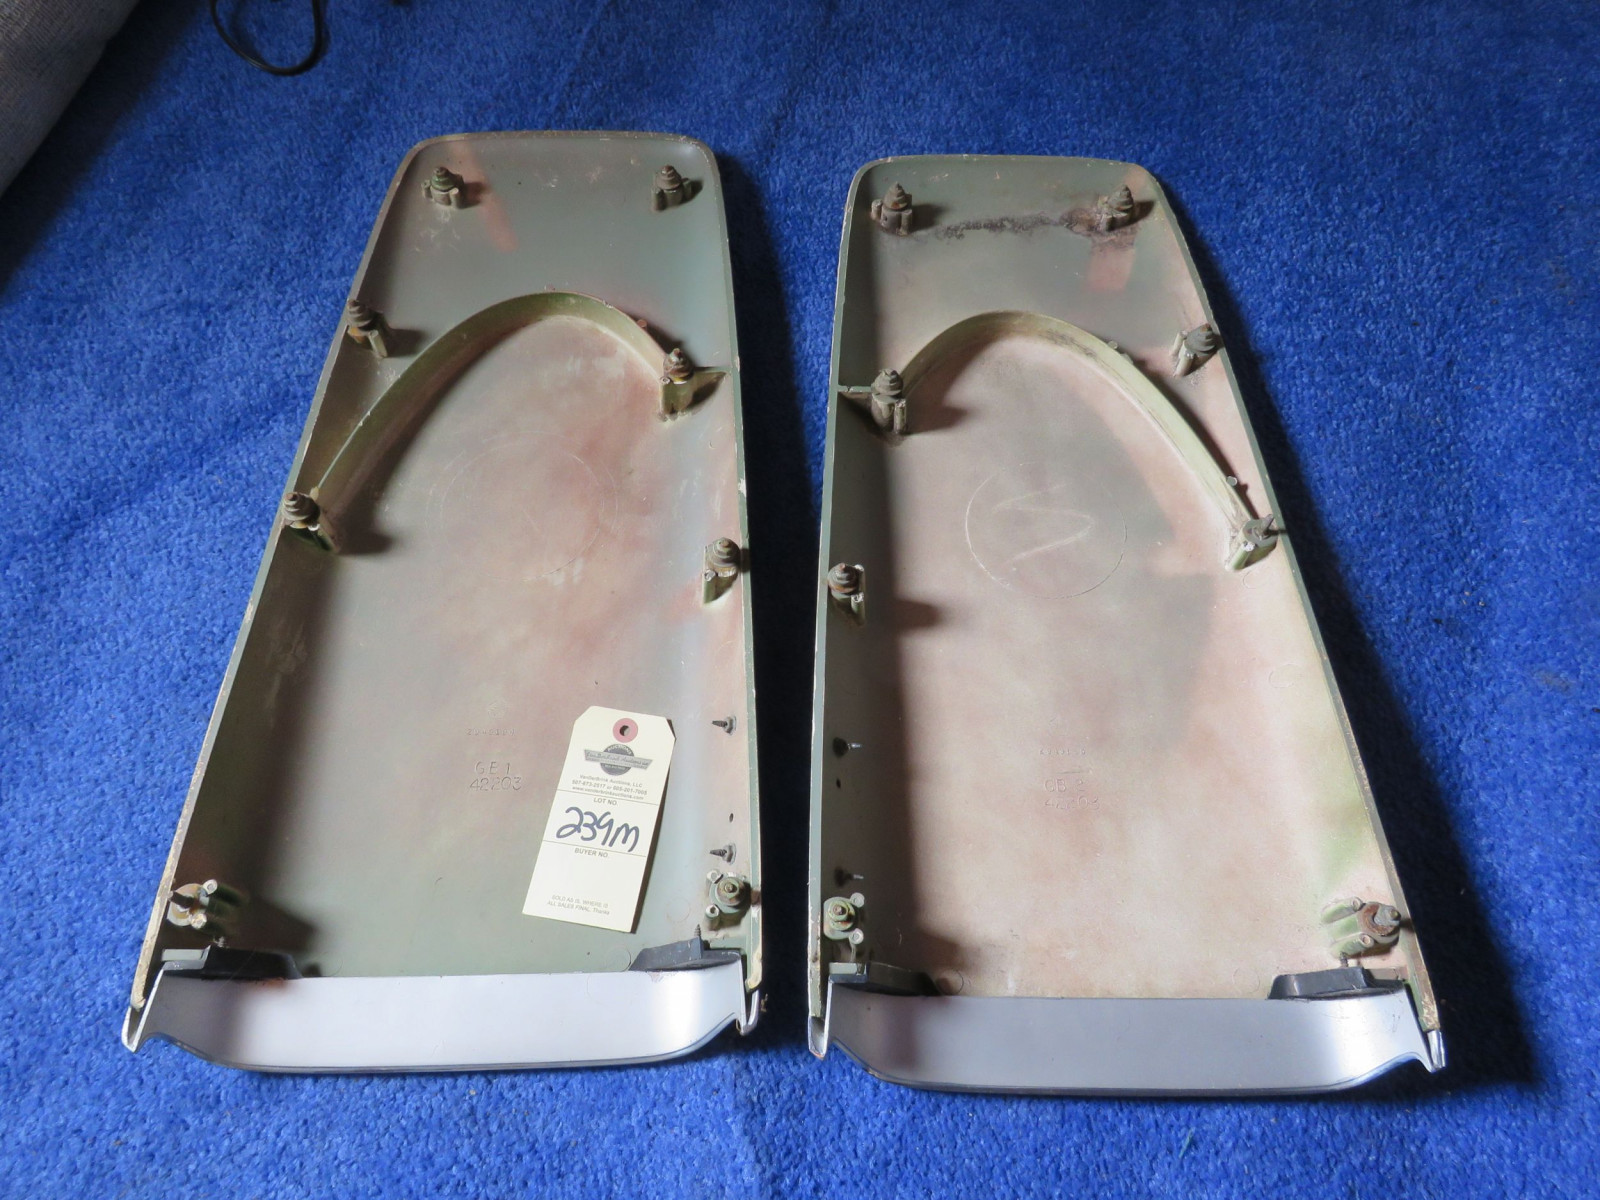 Original MOPAR 1969-72 A/B Body Twin Hood Scoops with 383 Emblems - Image 3